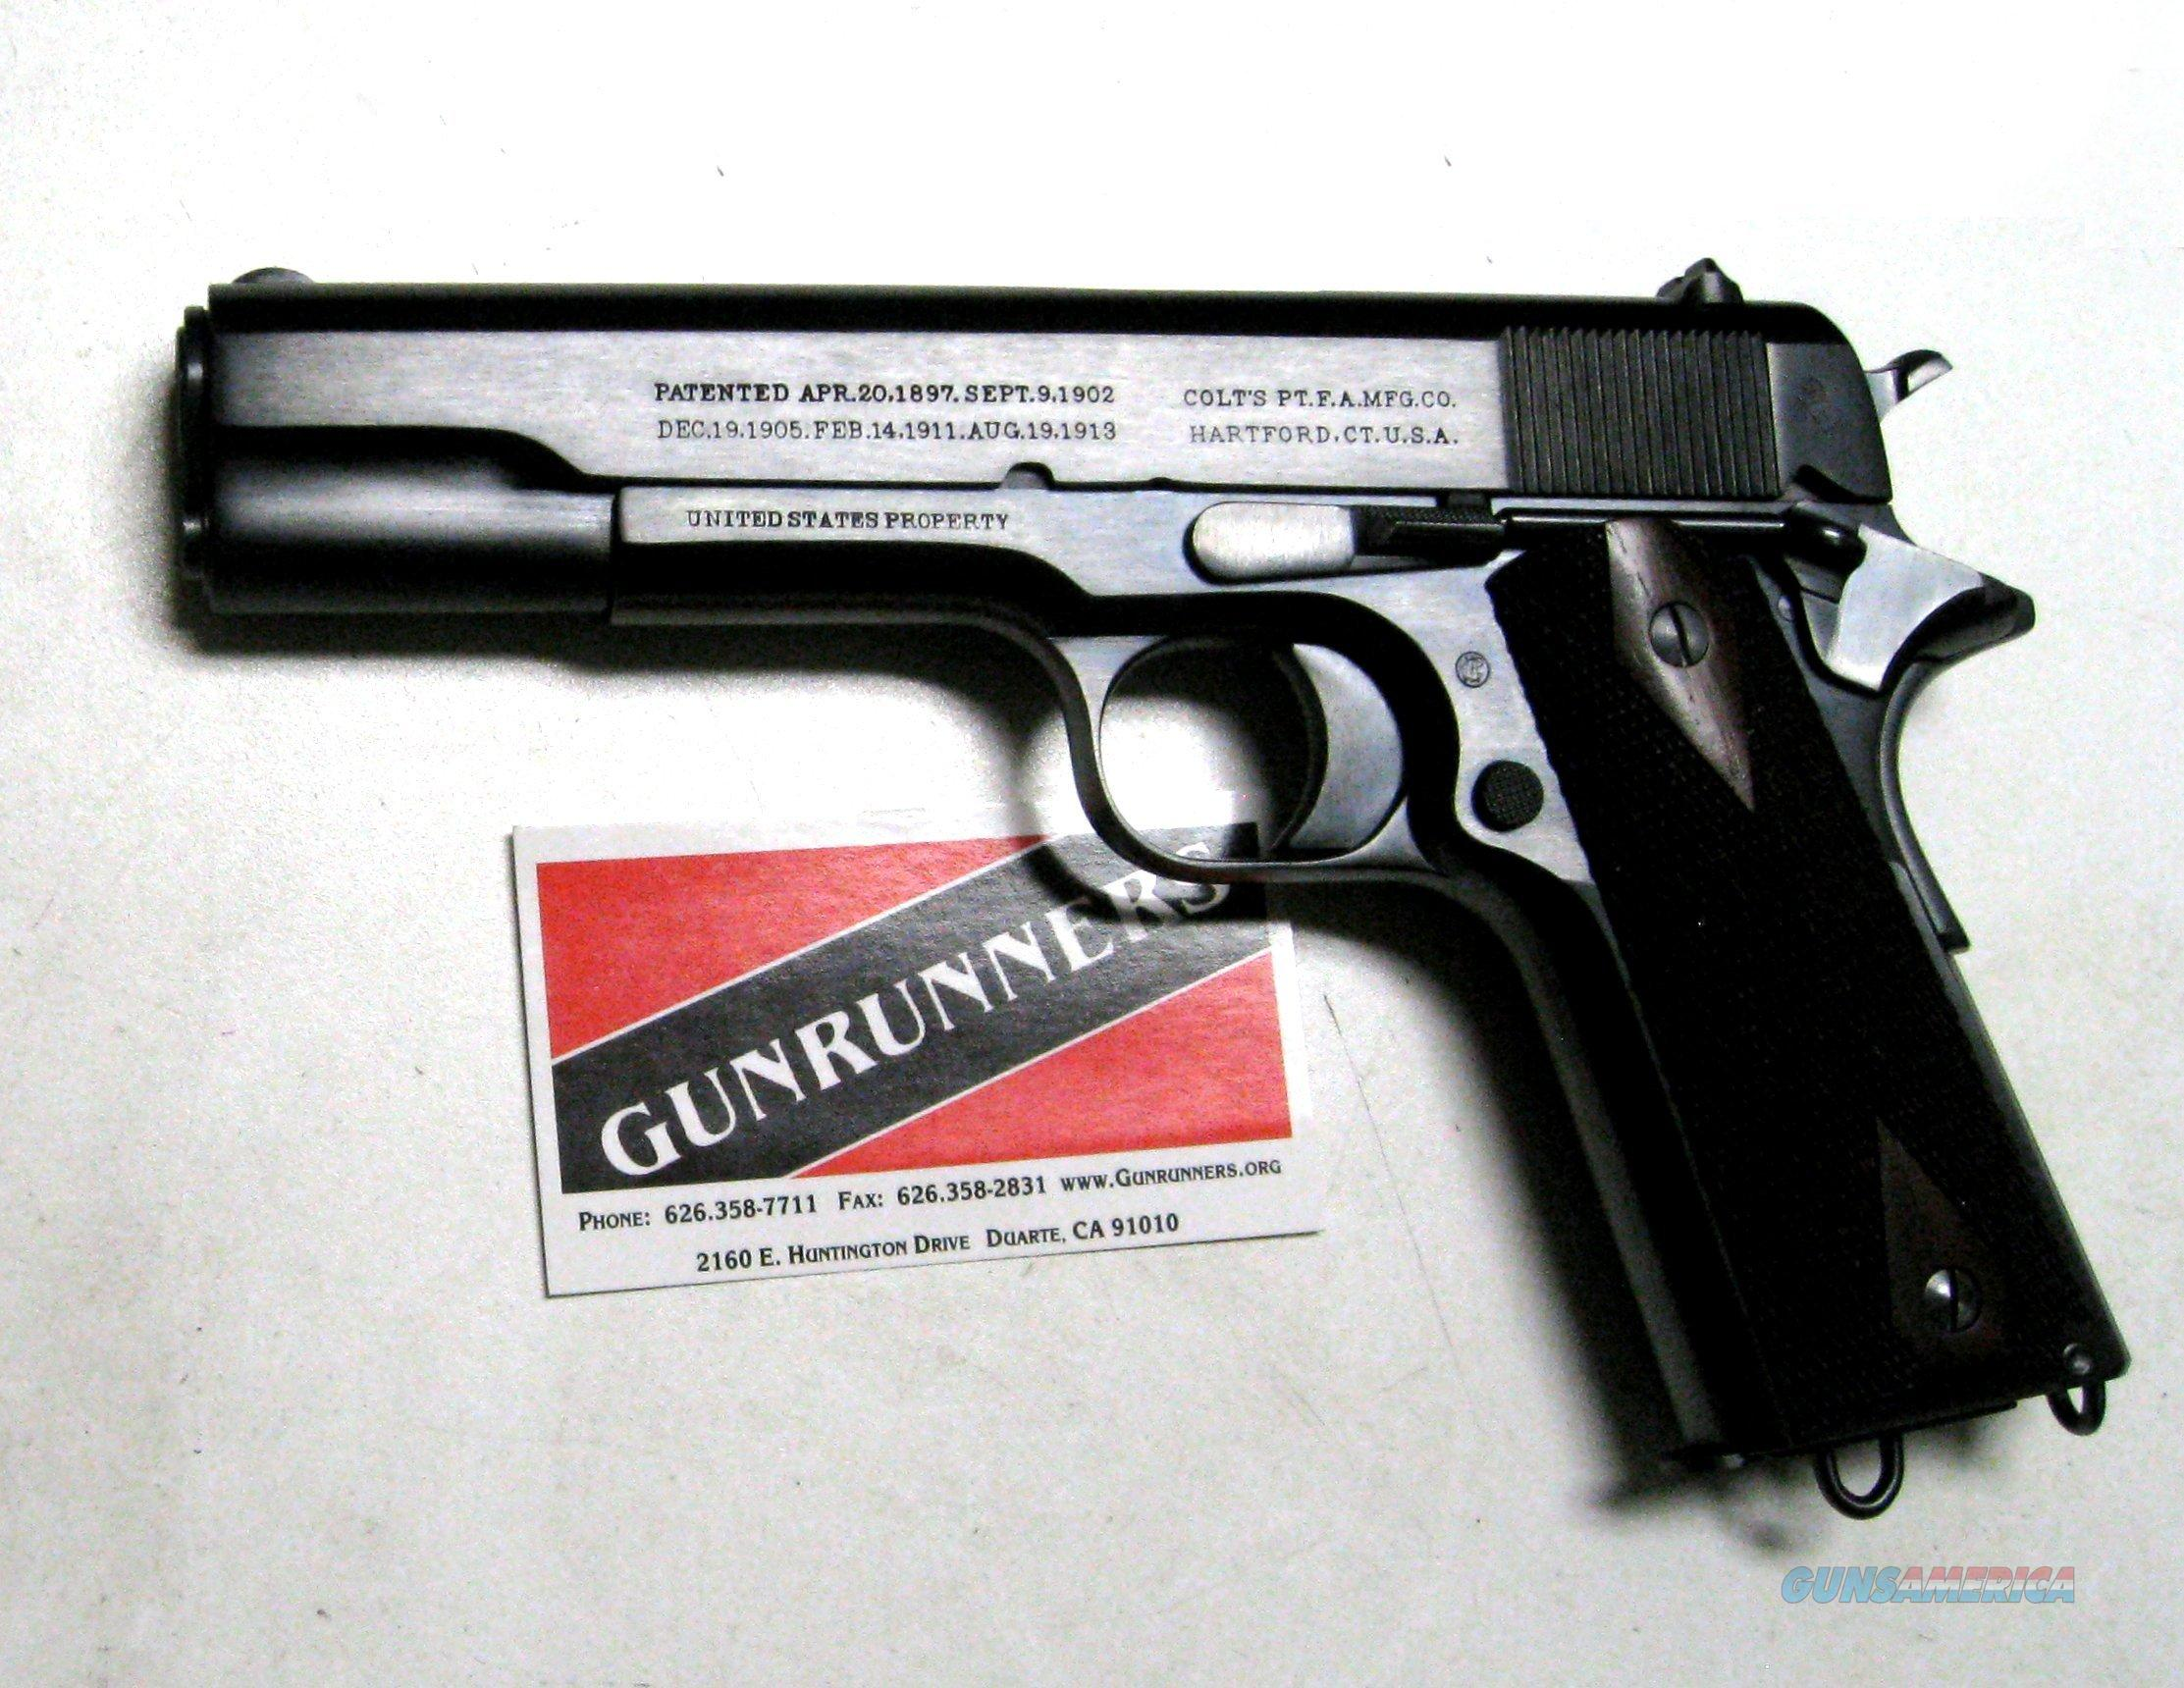 Colt 1911 .45 ACP, 1914 production, refinished by Turnbull  Guns > Pistols > Colt Automatic Pistols (1911 & Var)